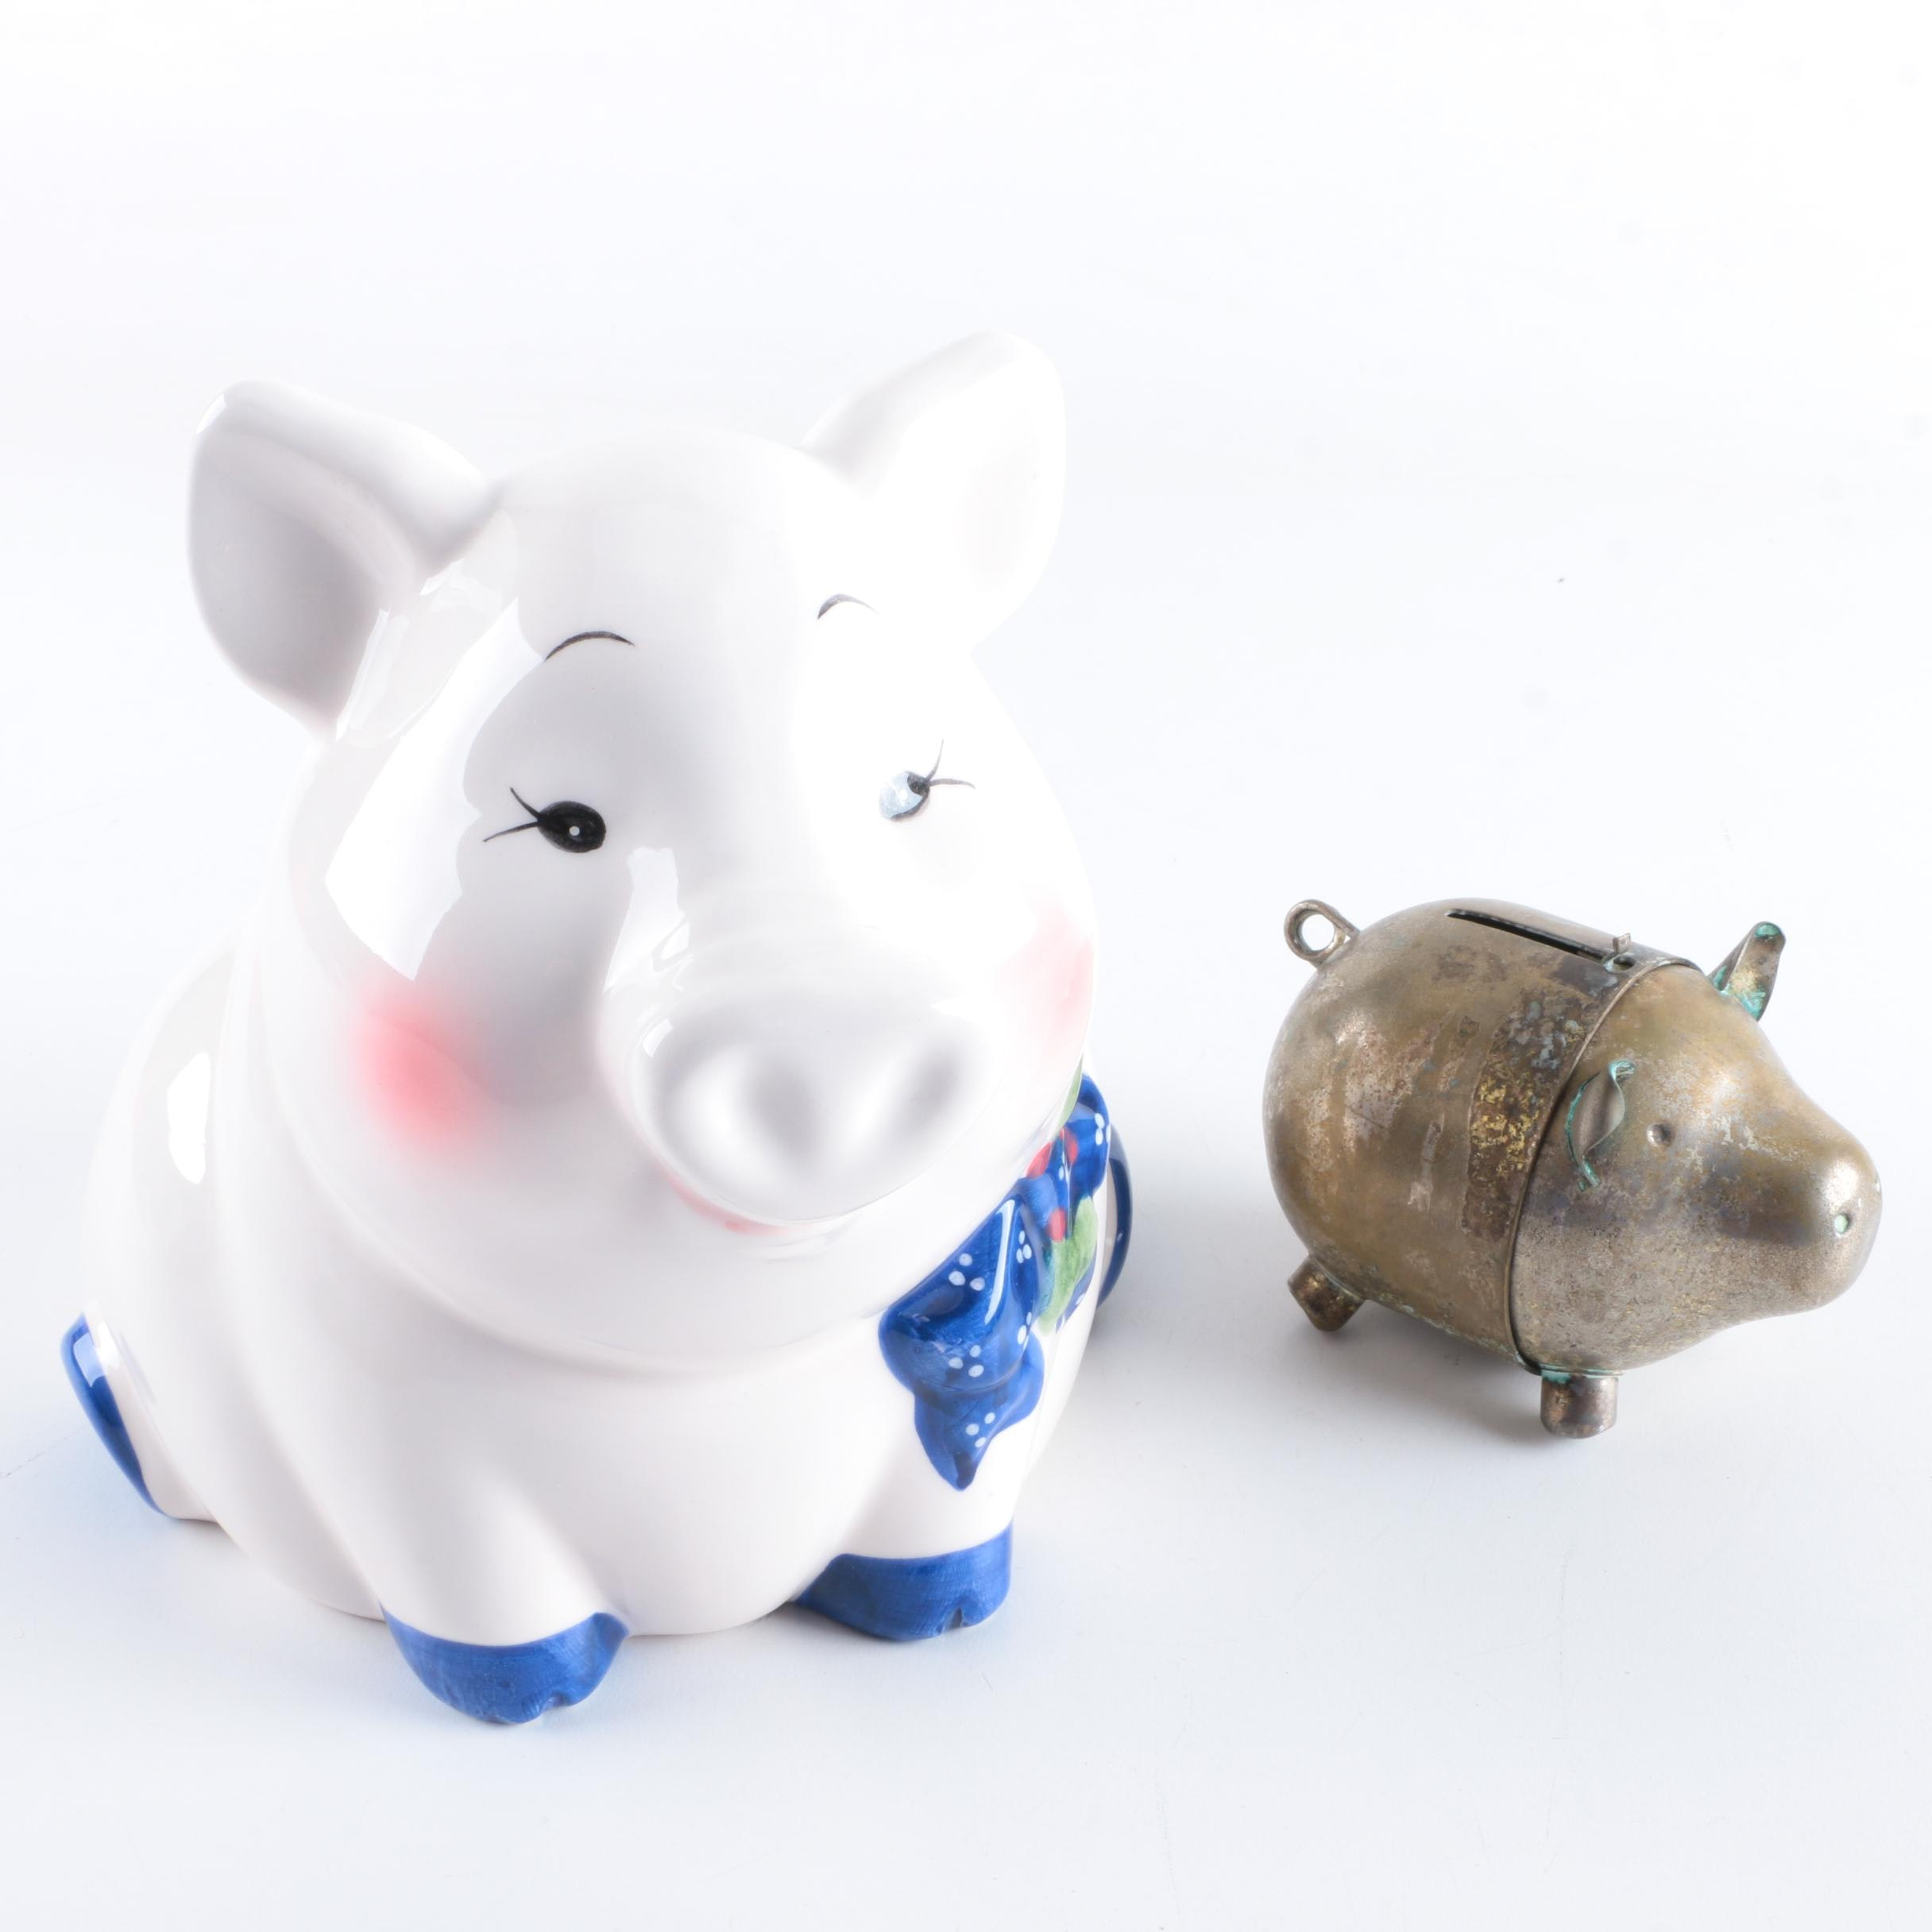 Pig Bank and Ceramic Figurine